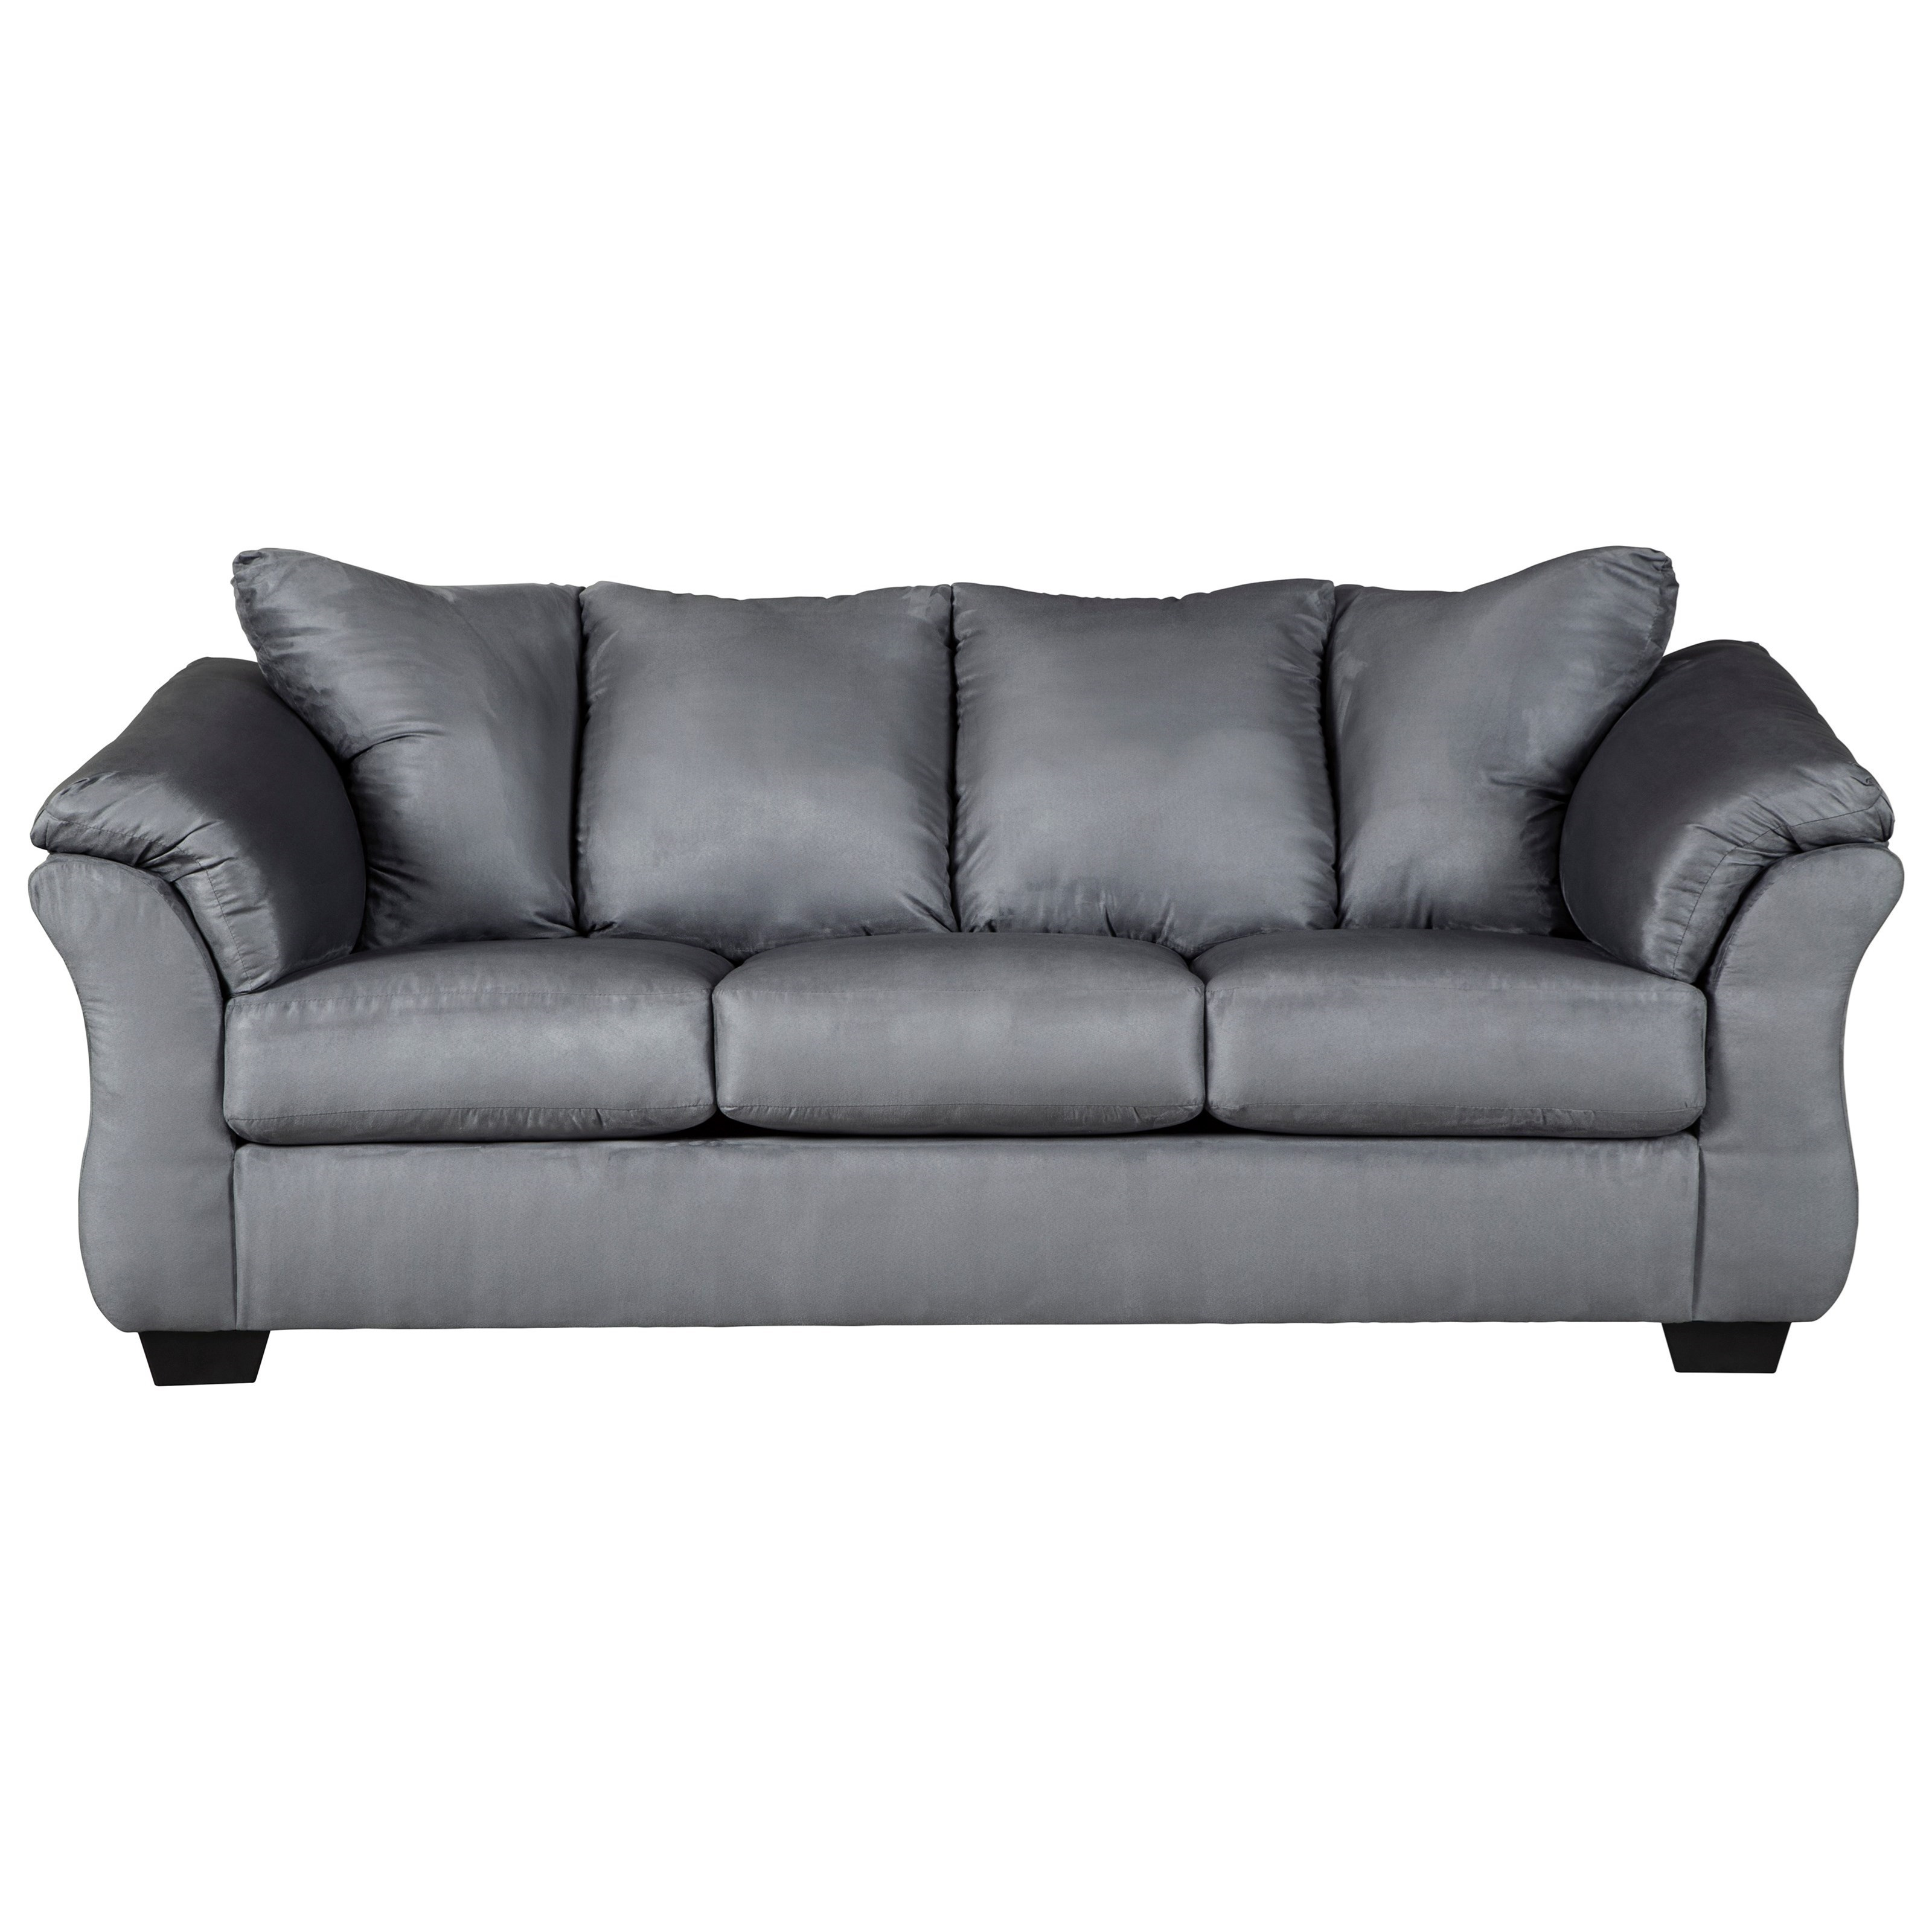 Darcy - Steel Stationary Sofa by Signature Design by Ashley at Rife's Home Furniture